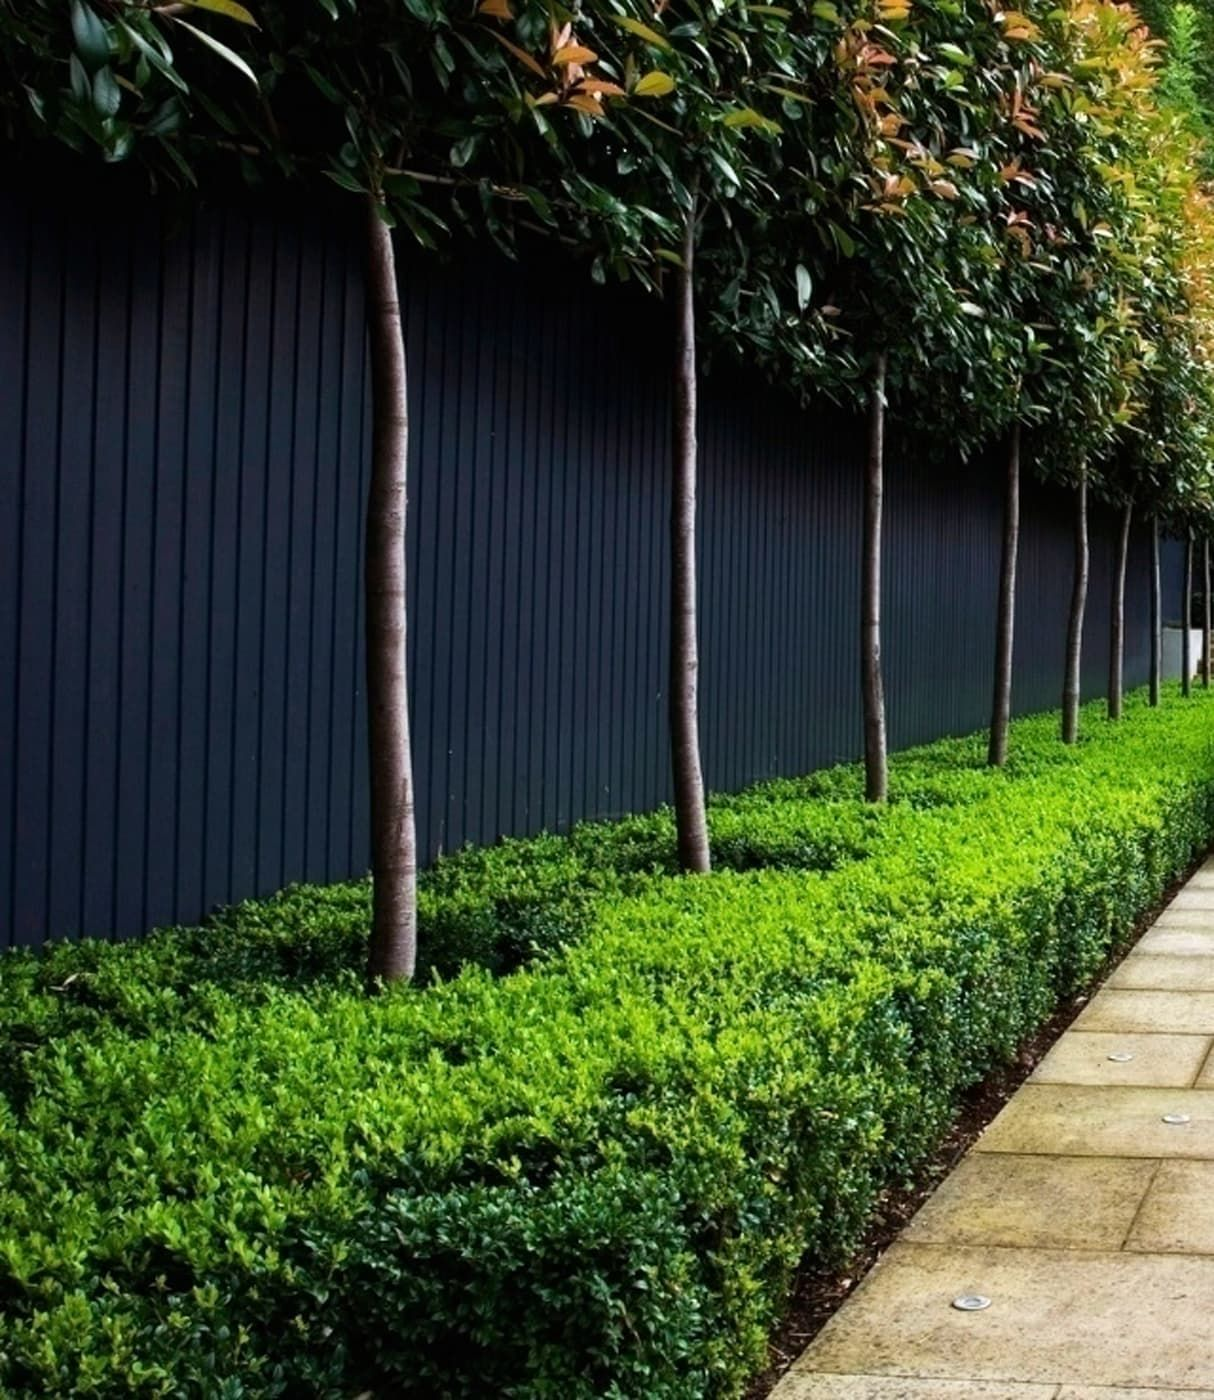 hedges-fences-or-boundary-walls.. 100+ Surprising Garden Design Ideas You Should Not Miss in 2021